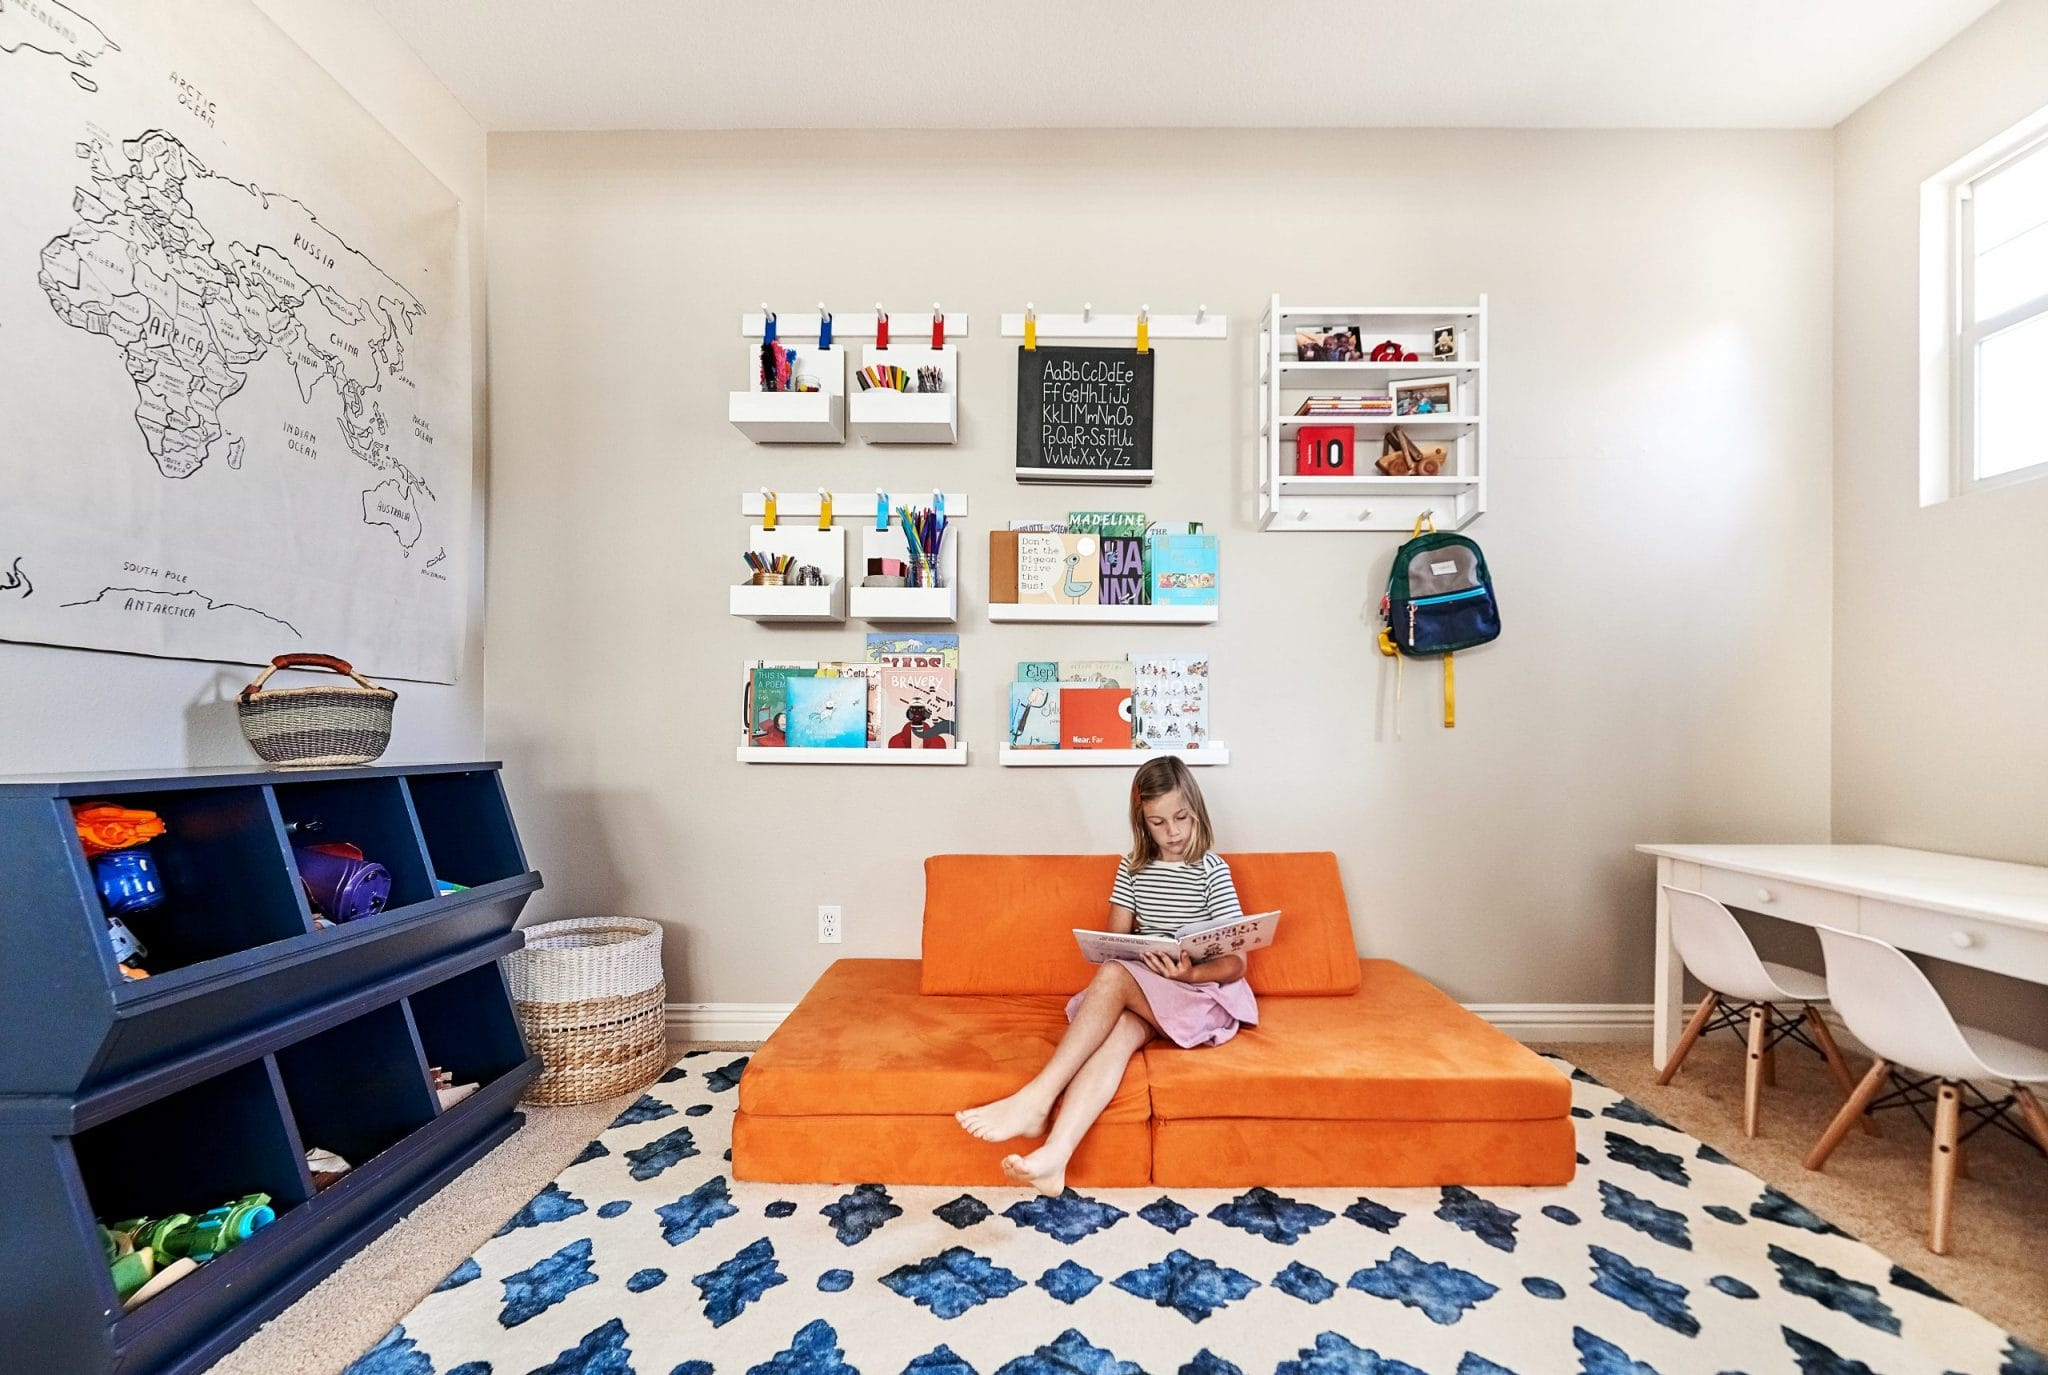 A child reading on the couch in the playroom